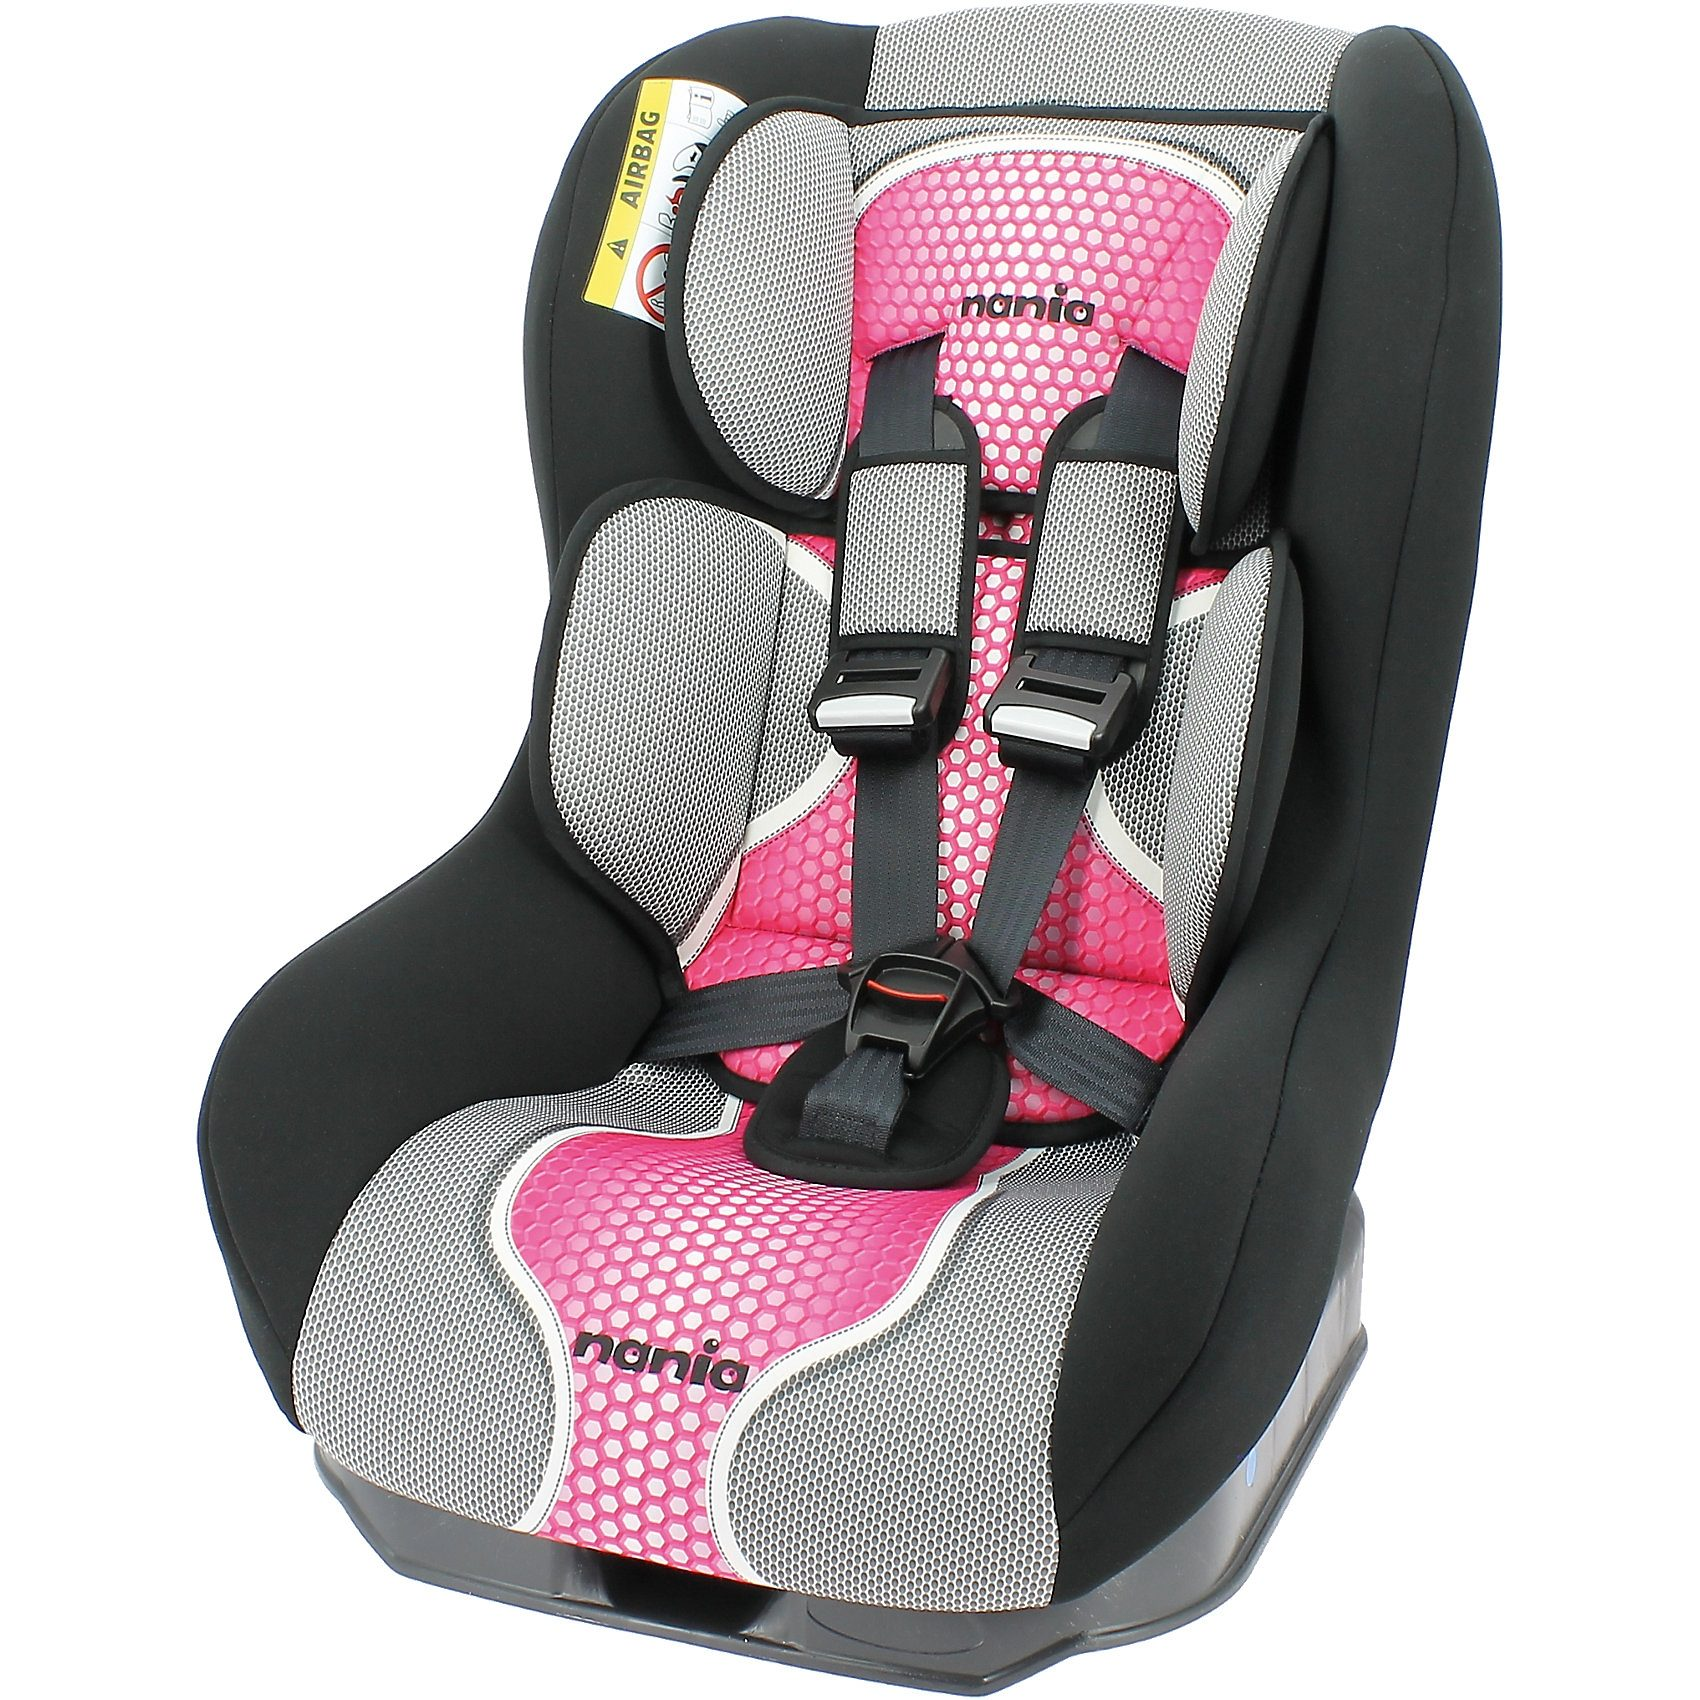 Osann Auto-Kindersitz Safety Plus NT, Pop Pink, 2017